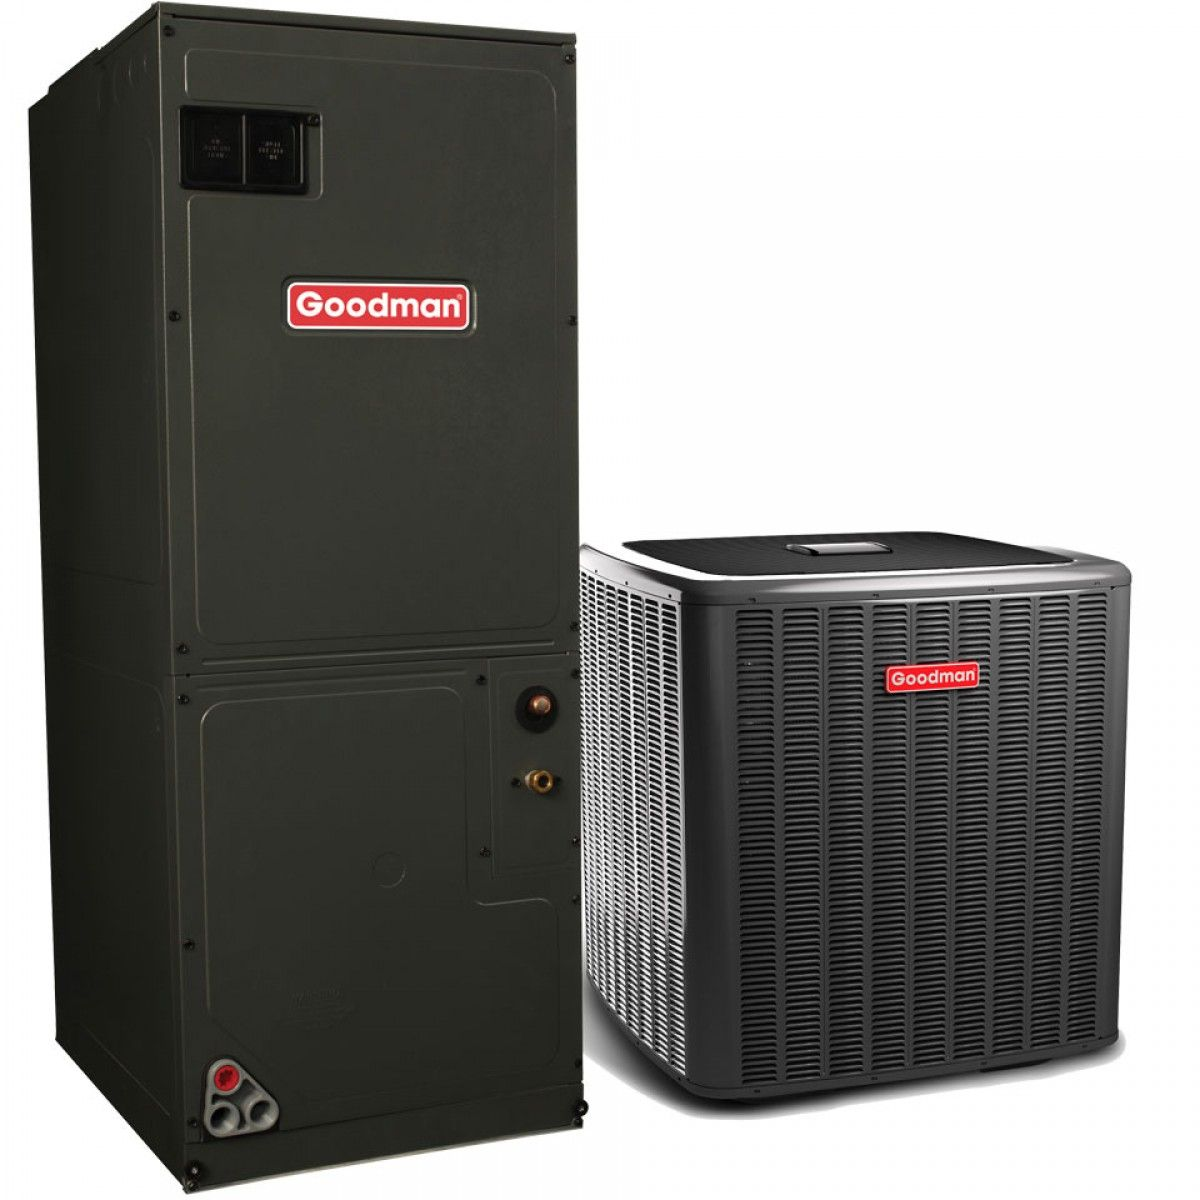 Goodman 3 5 Ton 15 Seer Variable Speed Air Conditioning